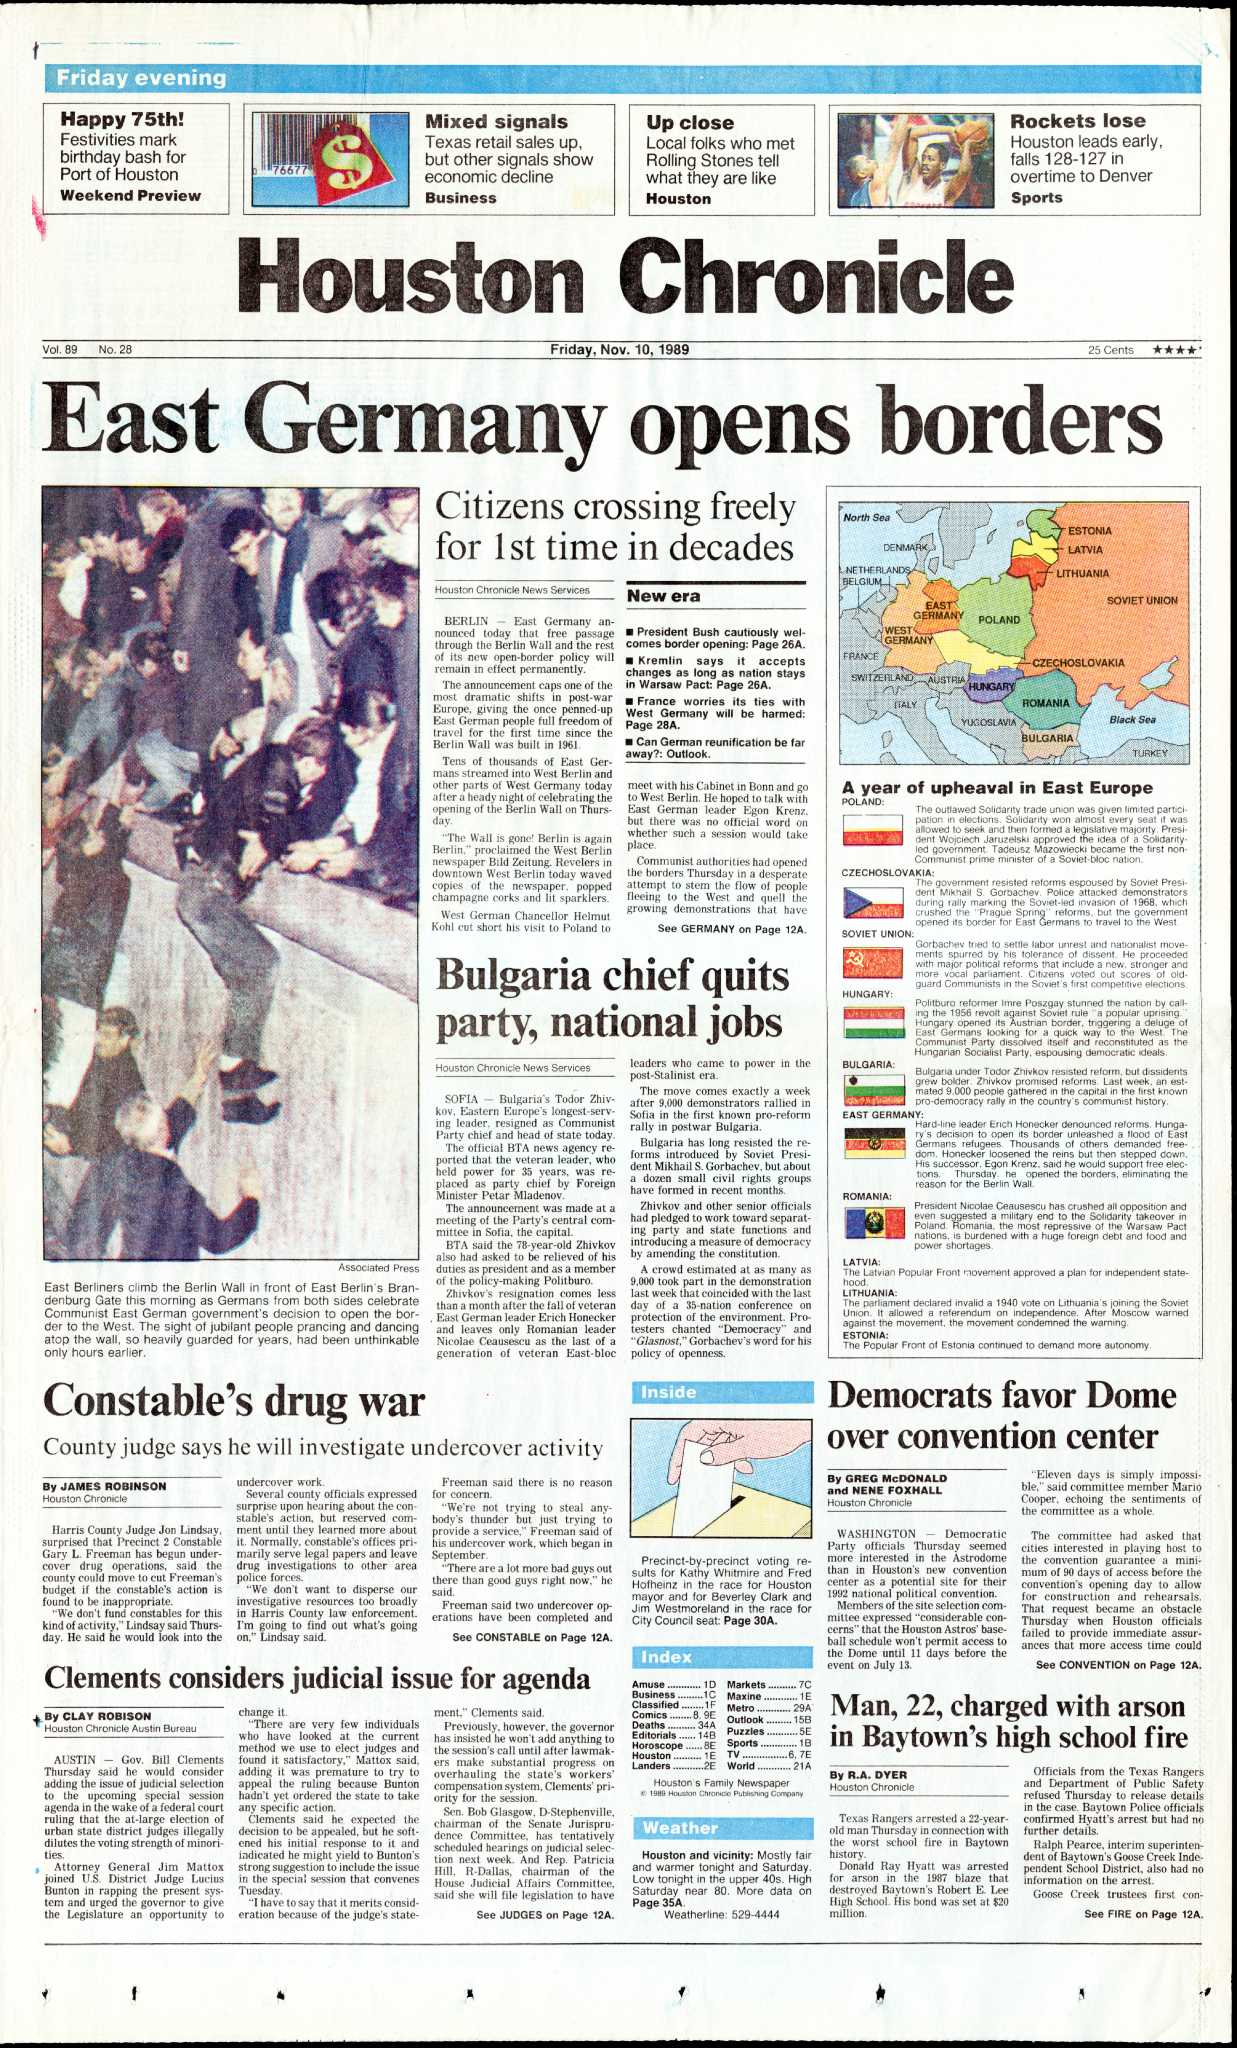 From the archives: East Germany opens borders